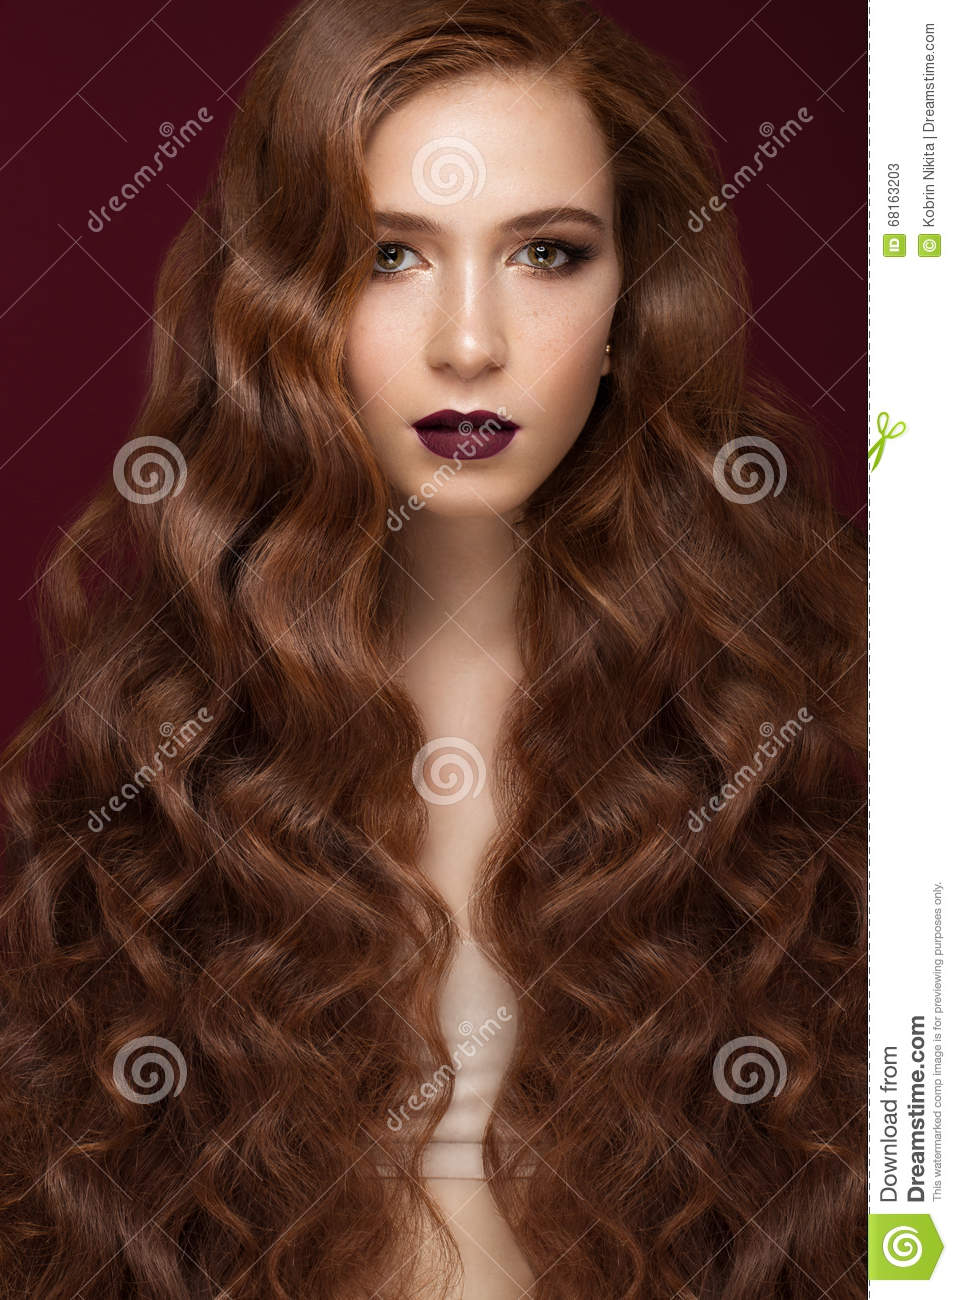 Beautiful Redhead Girl With A Perfectly Curls Hair And Classic Make